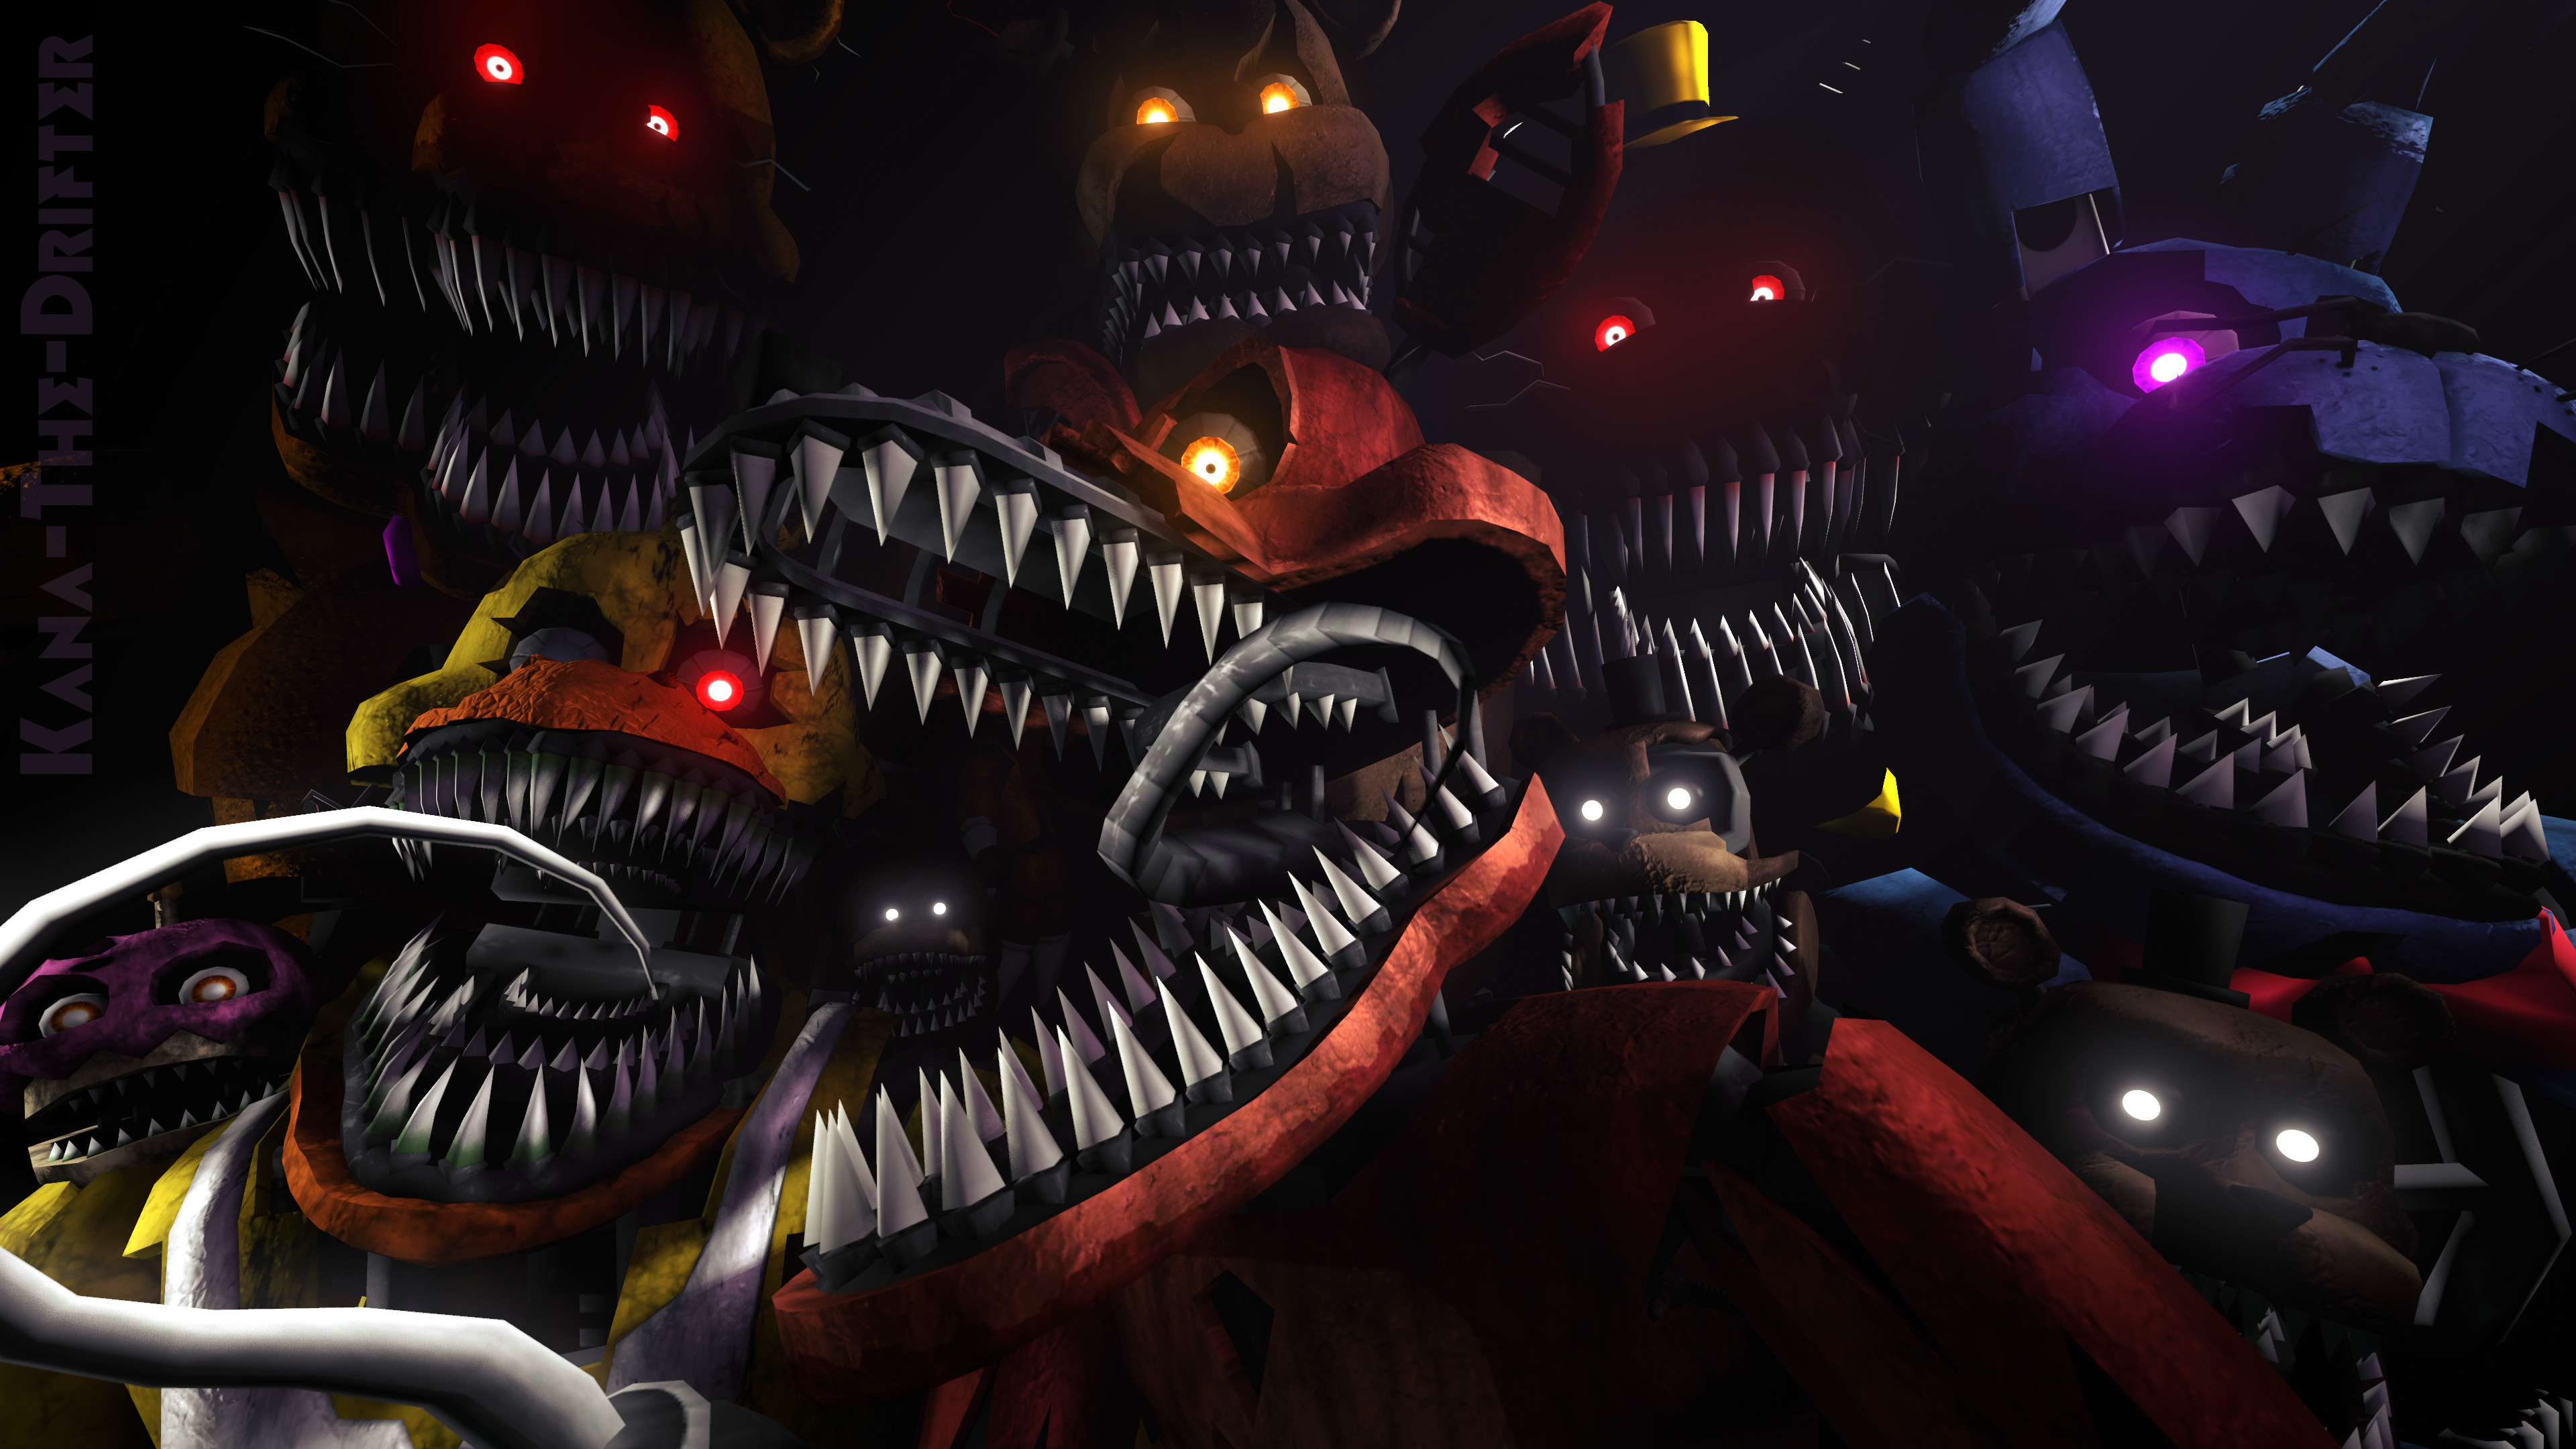 We'll Stay Here Forever (FNAF SFM Wallpaper) by Kana-The-